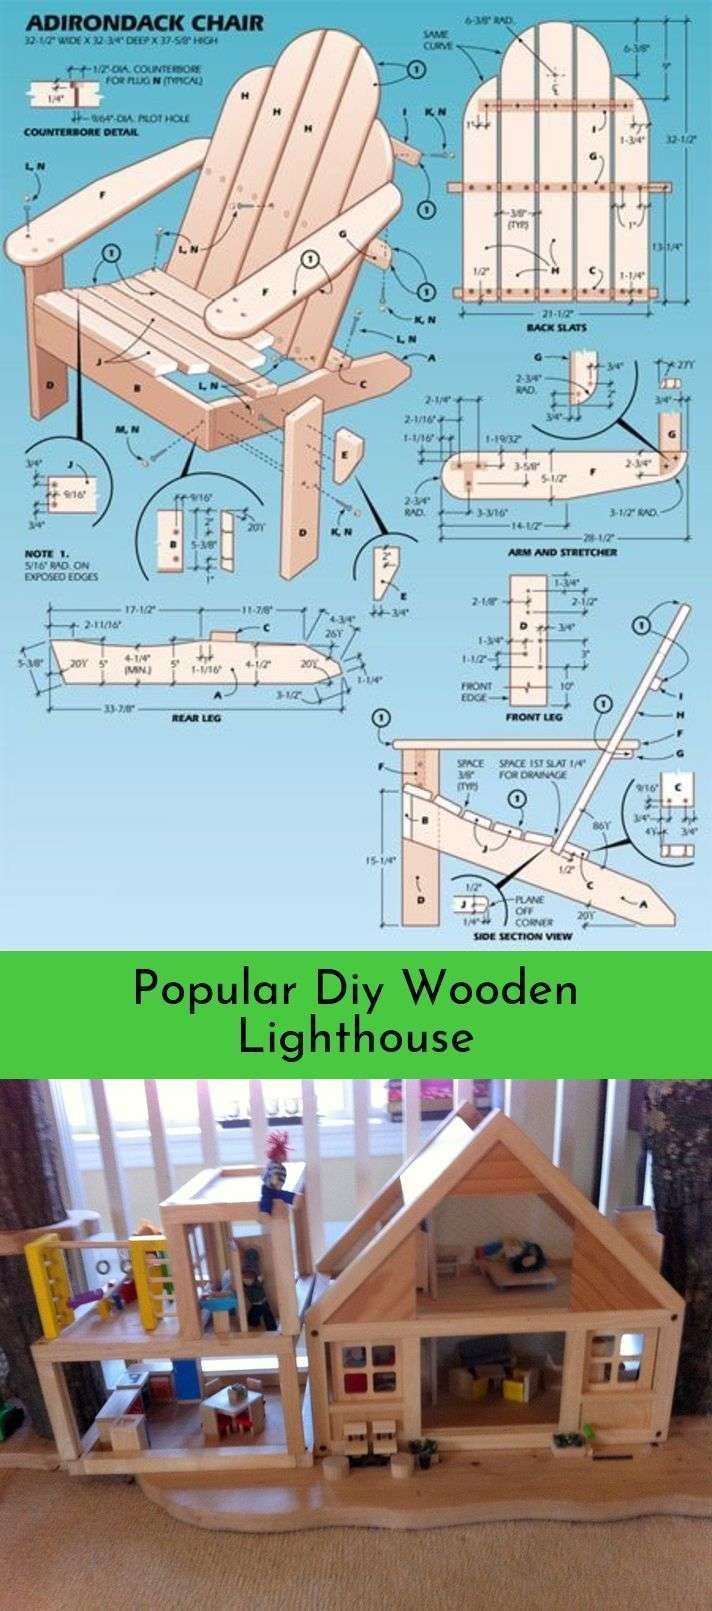 Diy Woodworking Shops Near Me Daily Woodworking Tips Woodworking